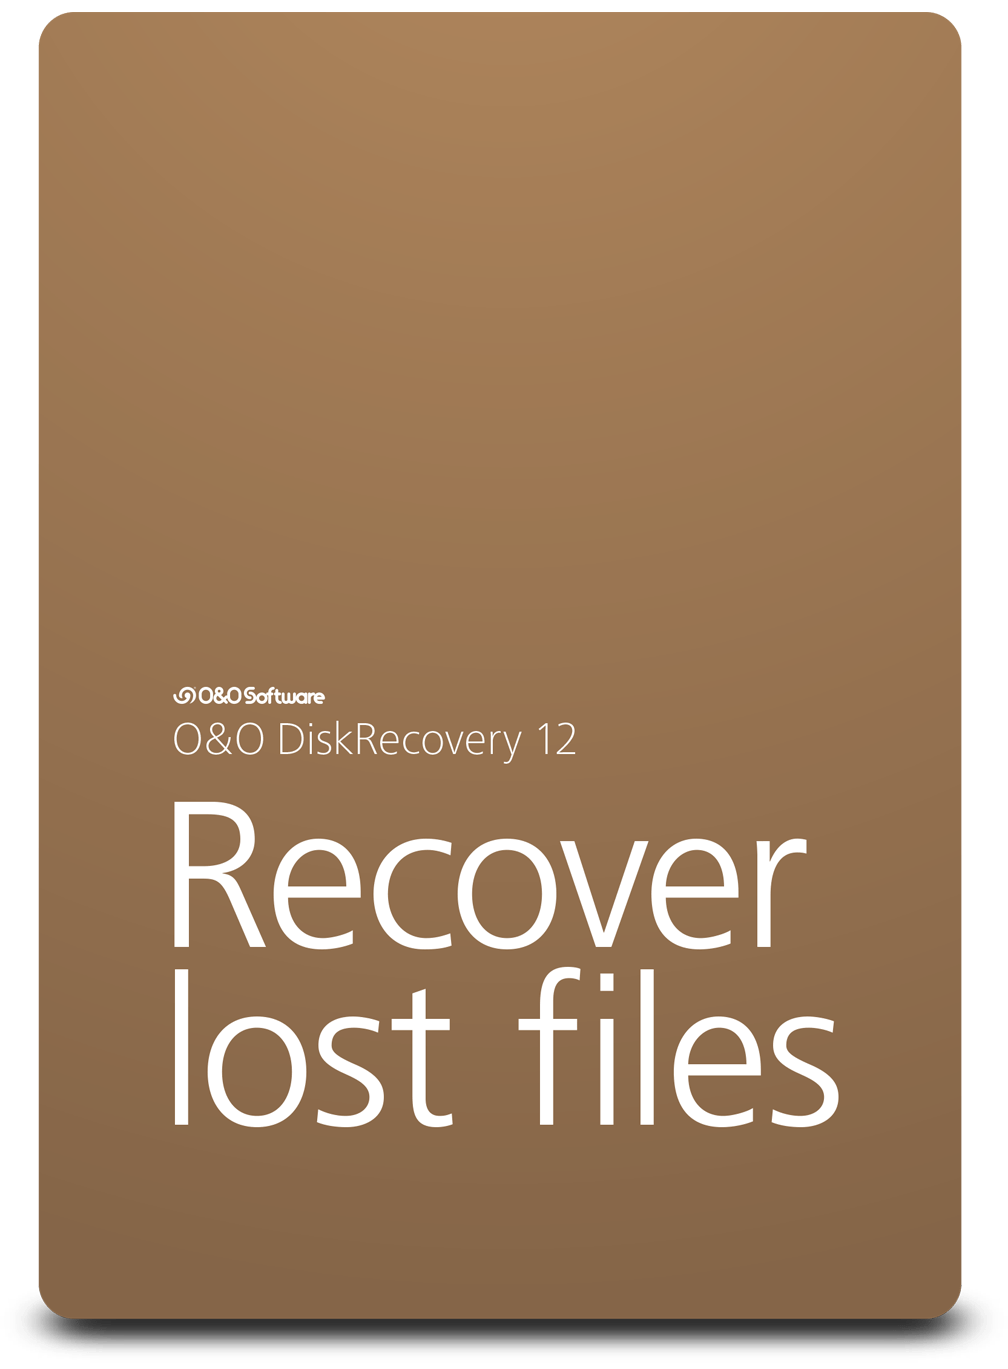 o&o diskrecovery full version free download